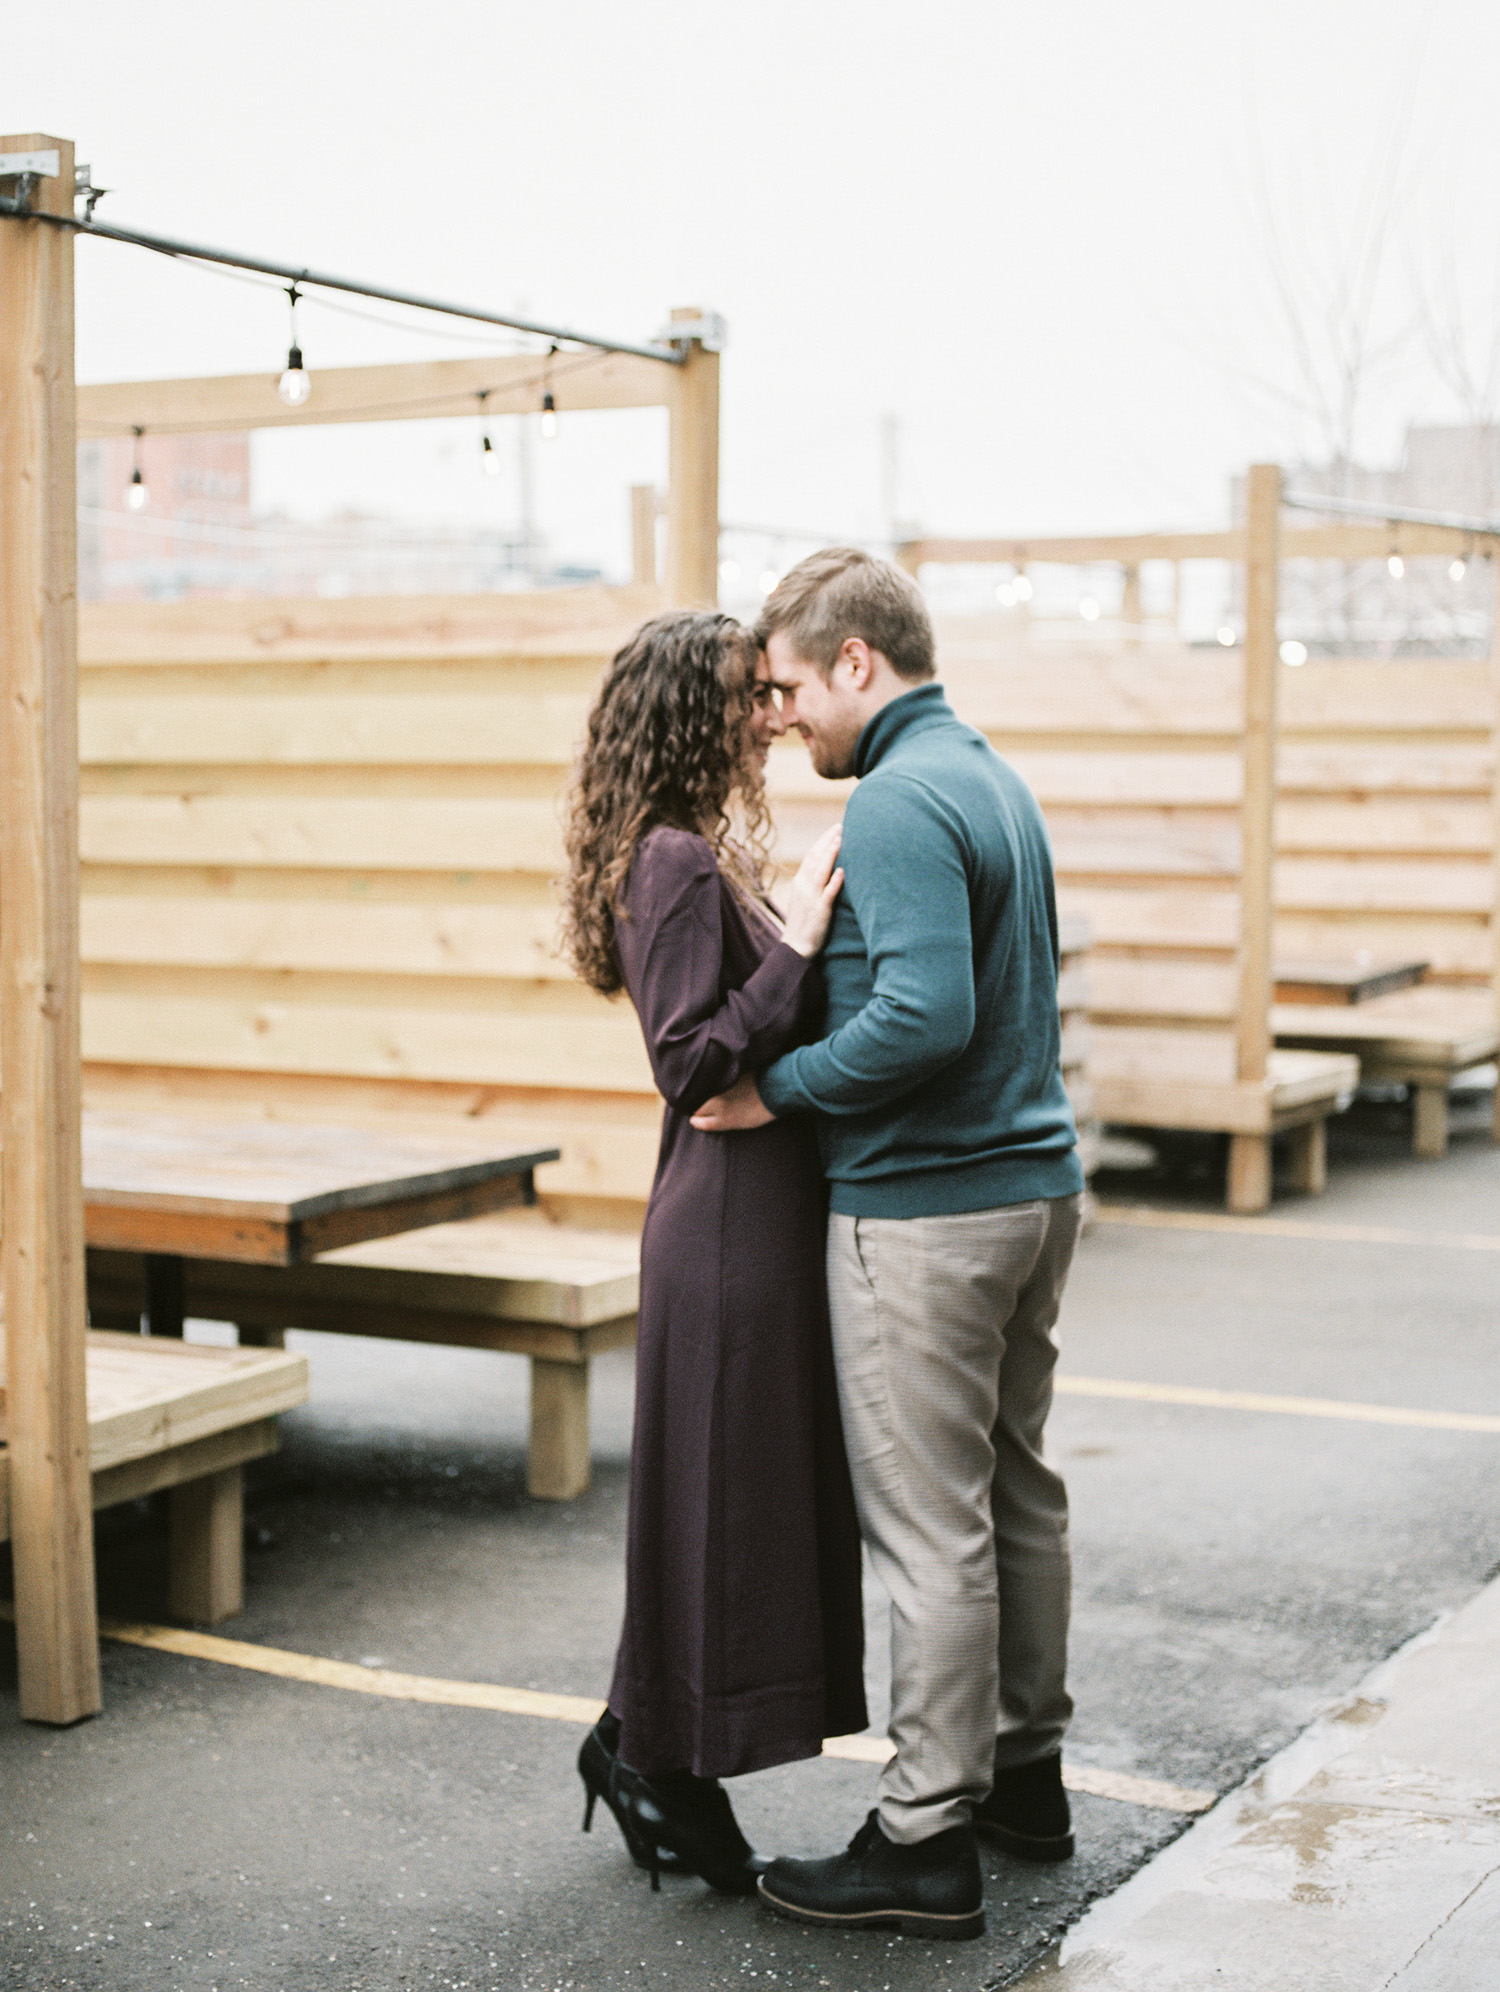 An engaged couple embraces at Detroit Shipipng Co. during their Michigan engagement session on film